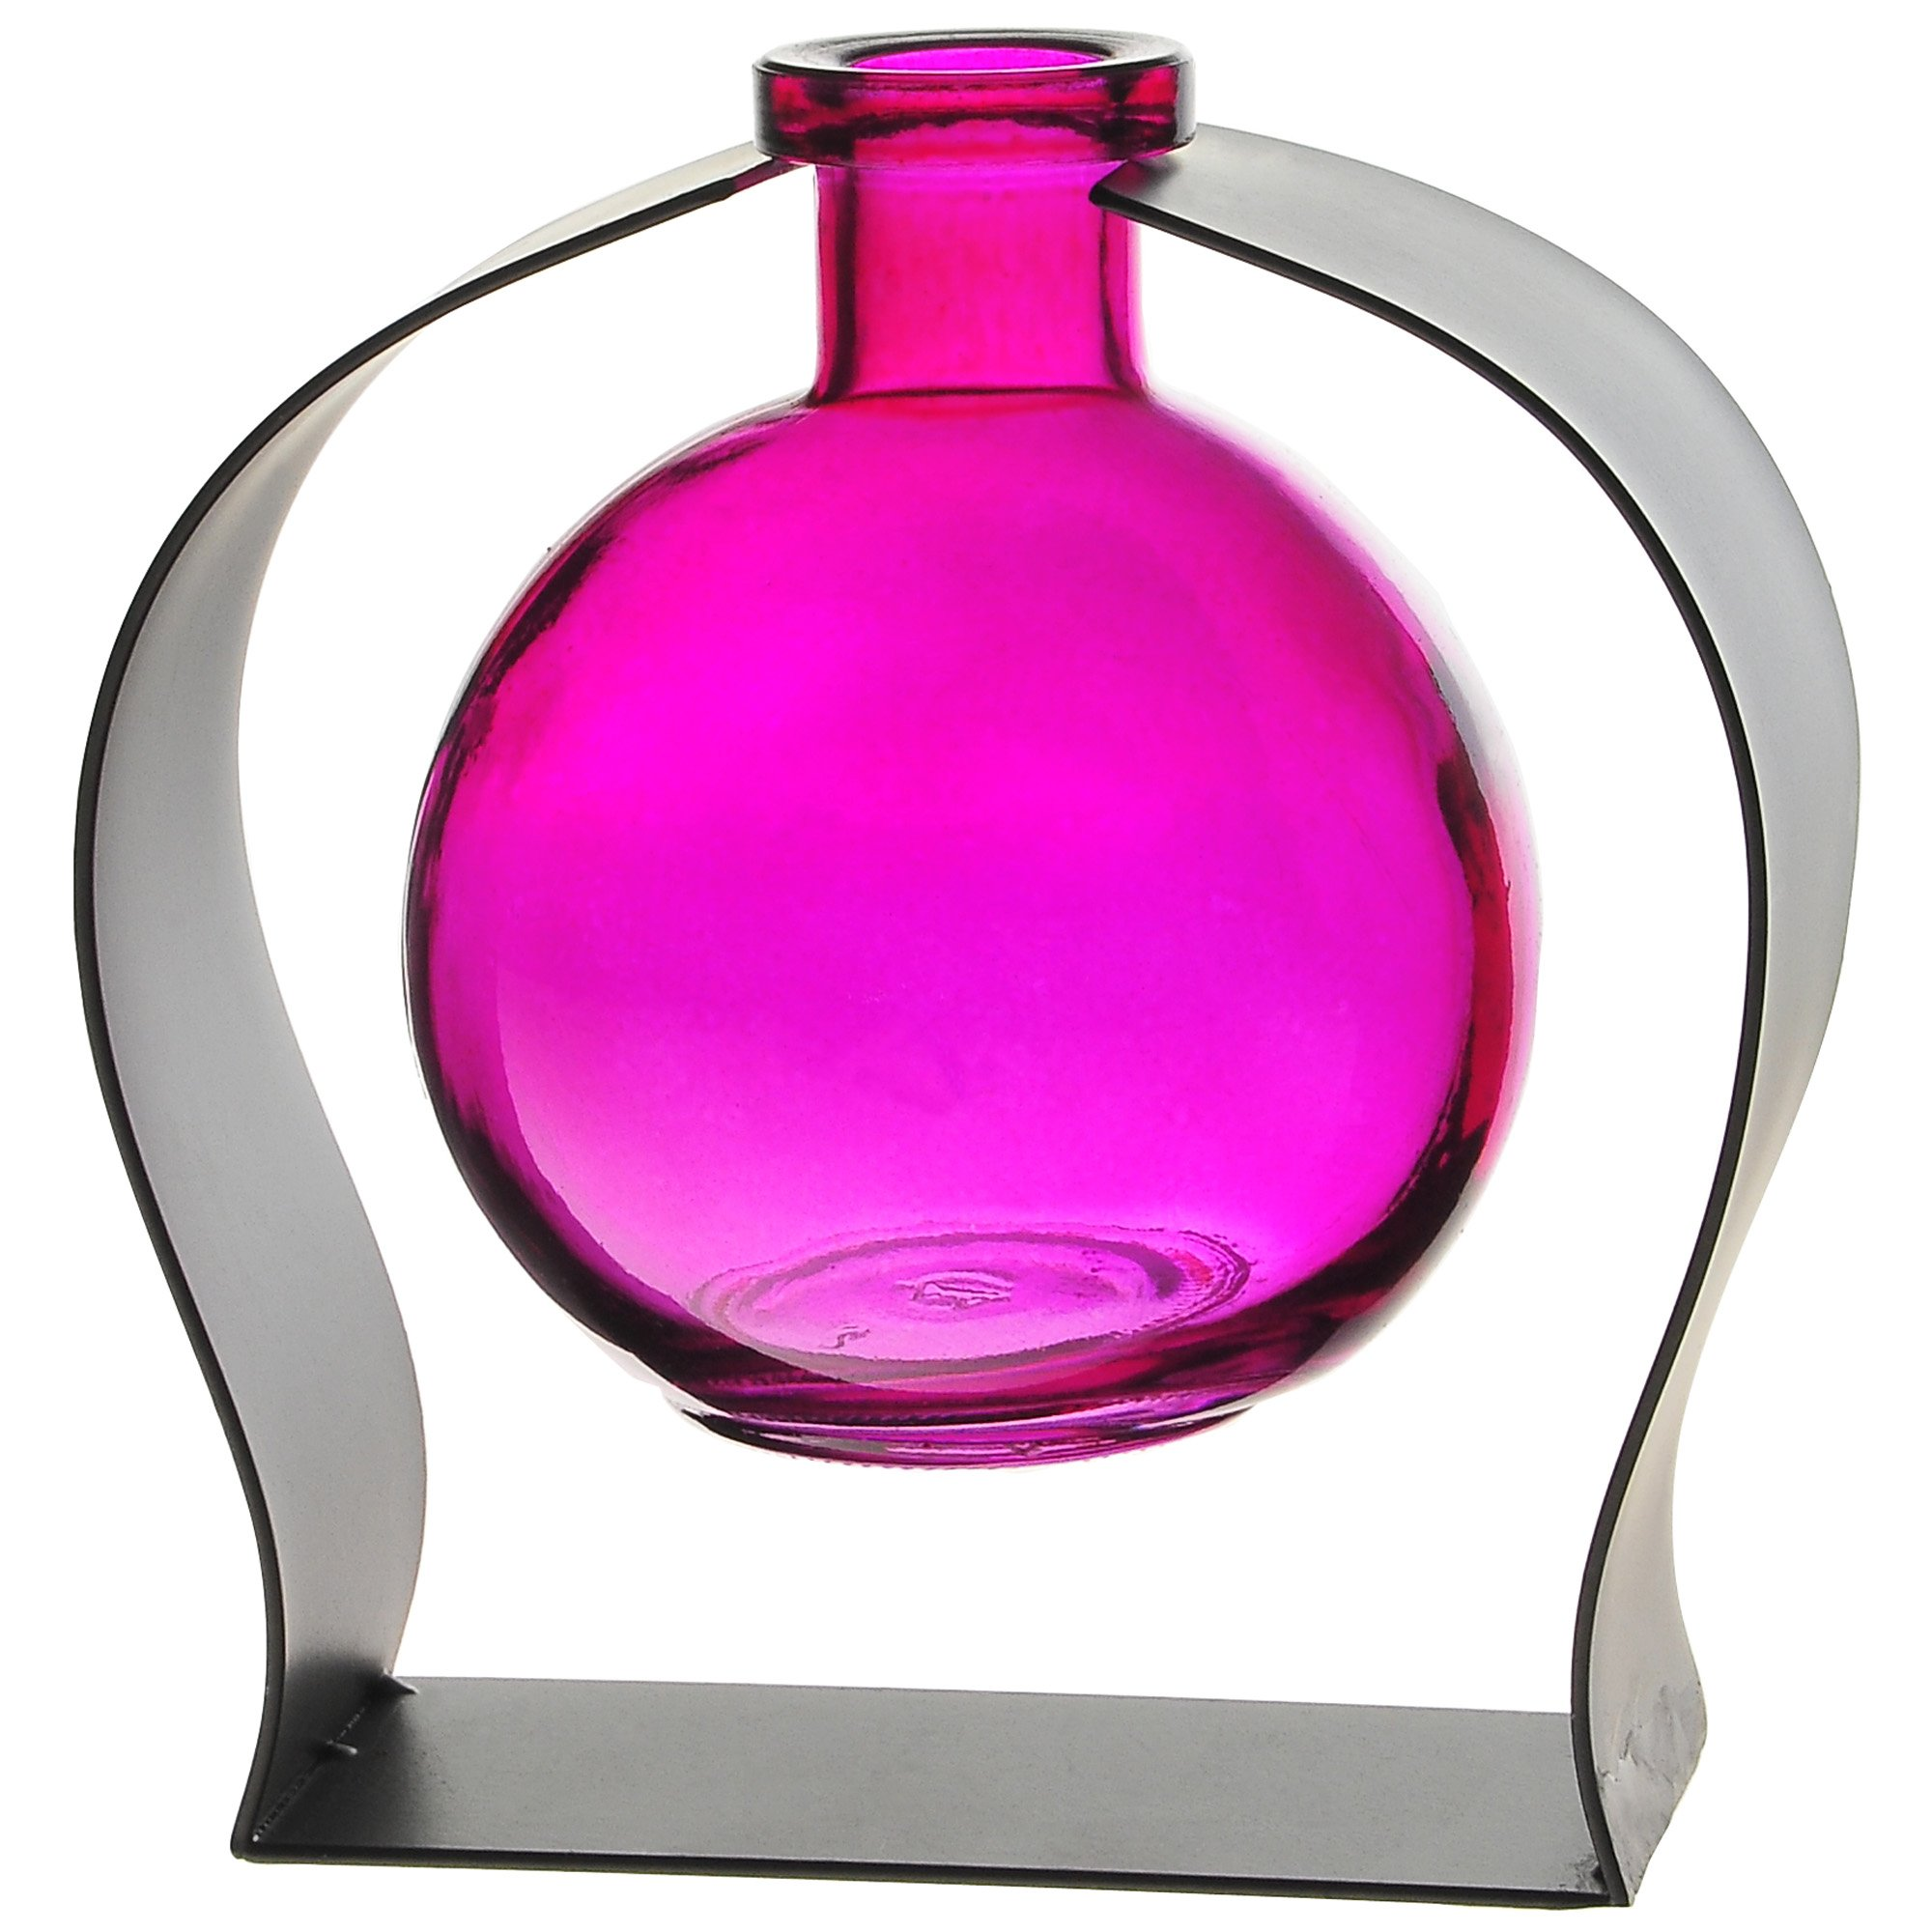 Couronne Company M244-200-07 Ball Recycled Glass Vase & Arched Metal Stand, 5 3/4'', Fuchsia, 1 Piece